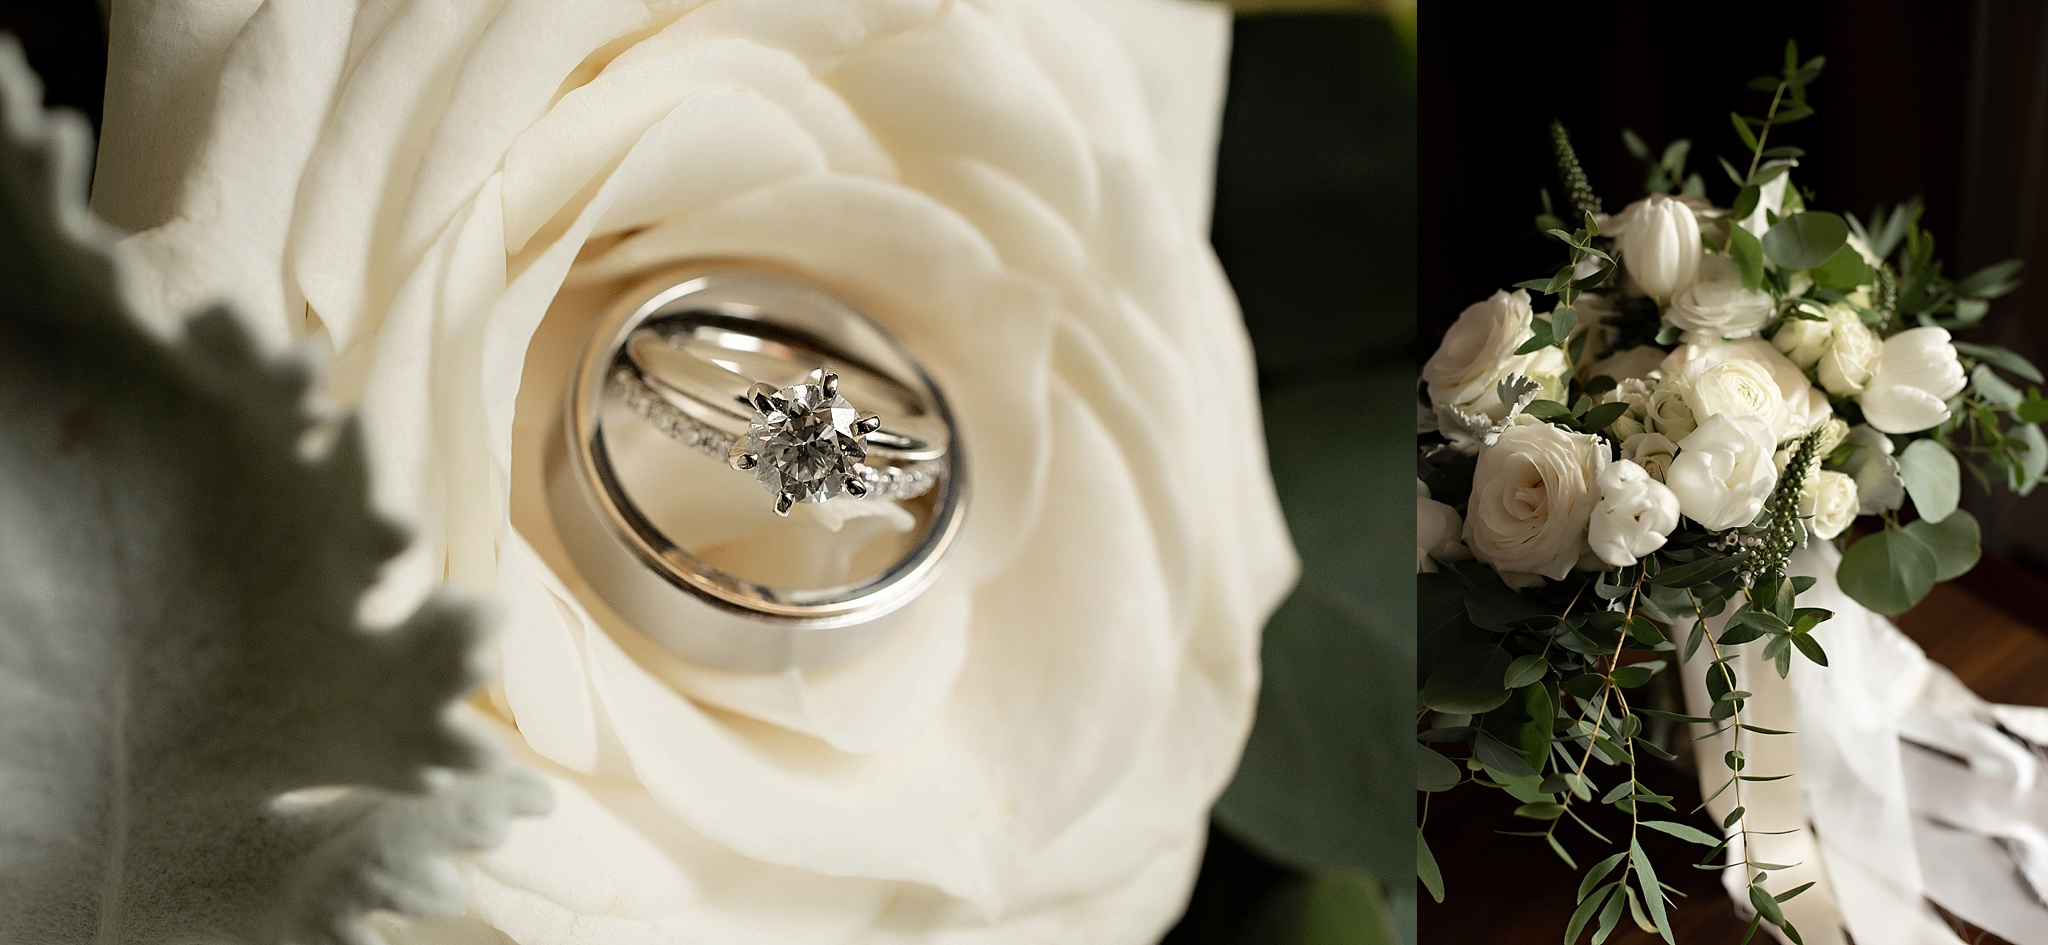 white bridal bouquet and solitaire wedding band set